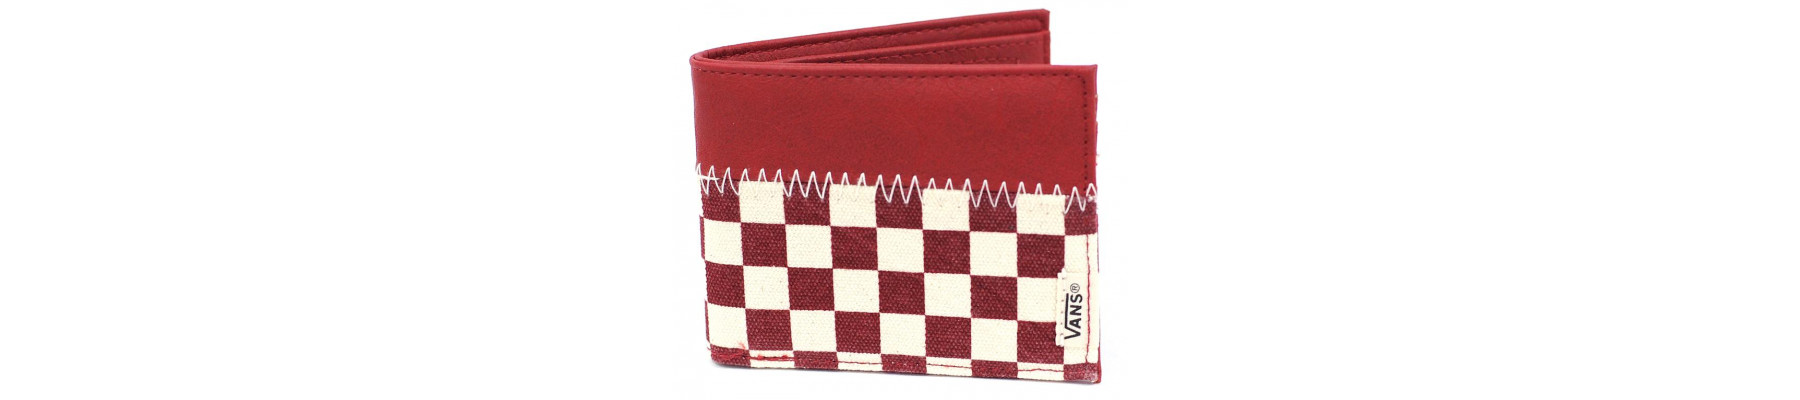 Vans Doheny Wallet Red